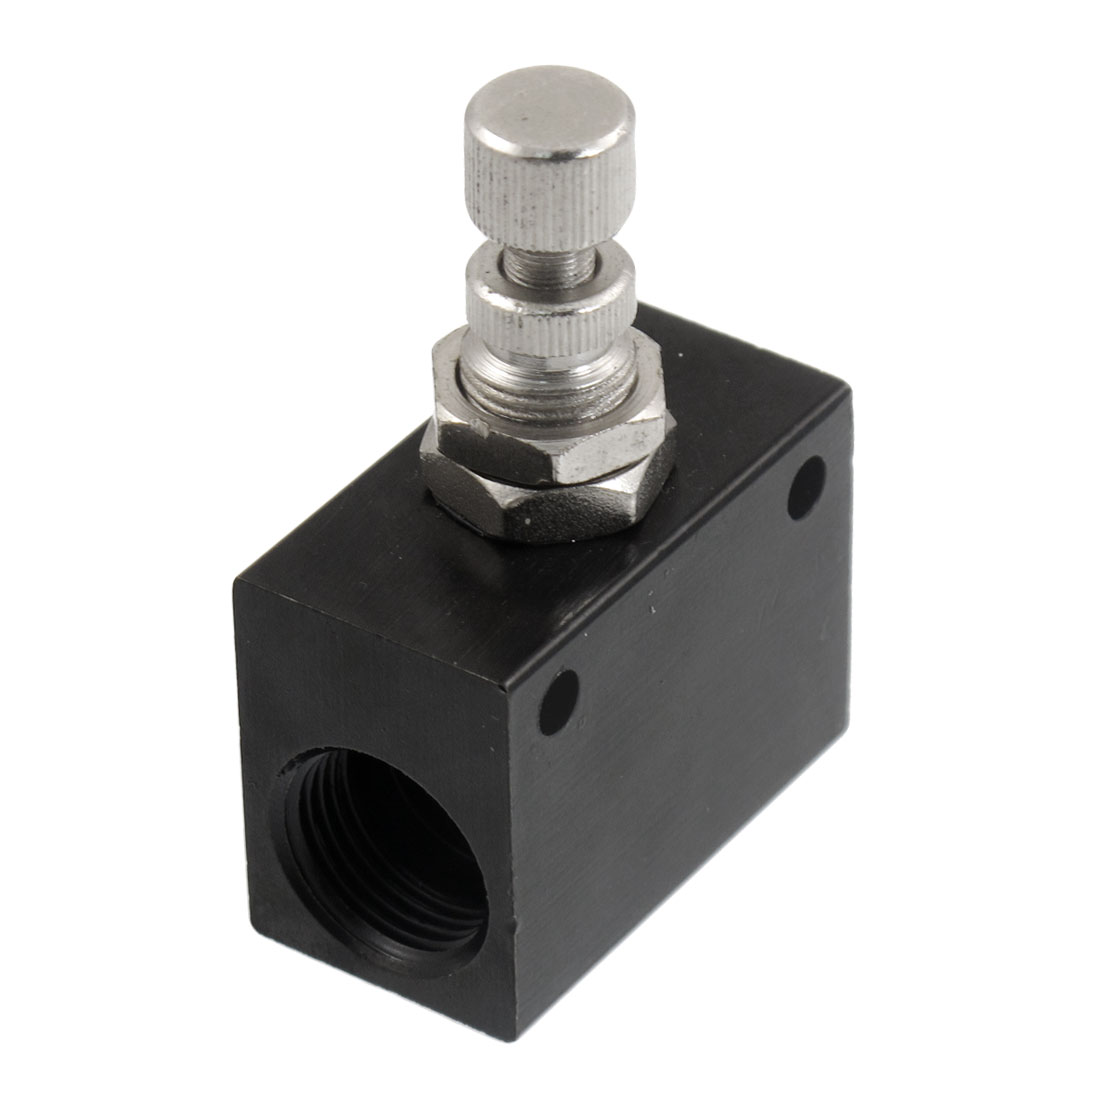 "Black Metal G3/8"" One-way Restrictive Precision Pneumatic Flow Control Valve"